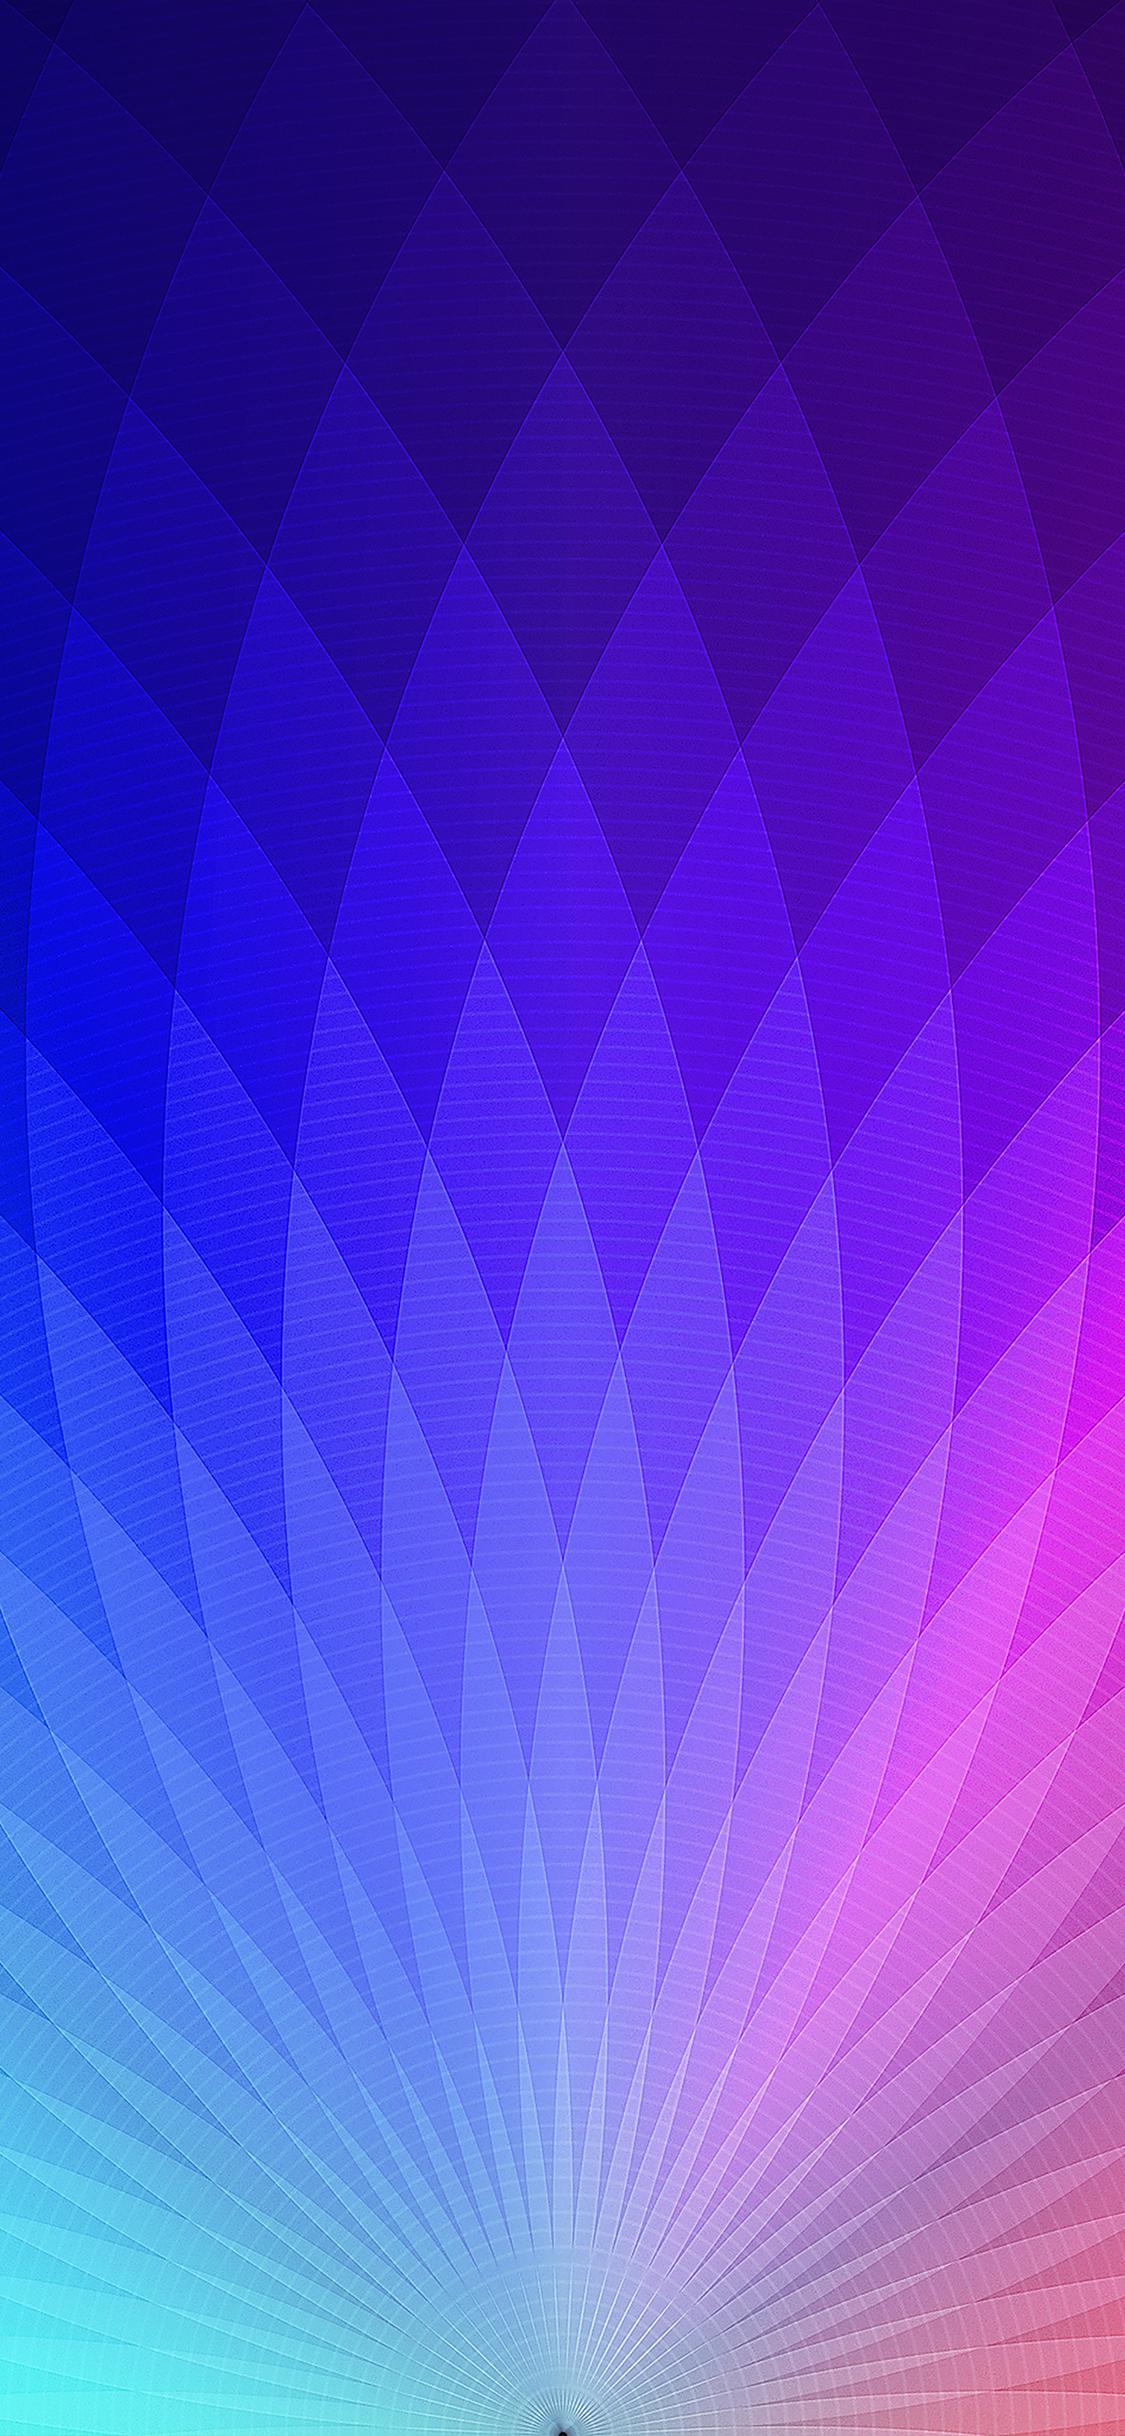 iPhoneXpapers.com-Apple-iPhone-wallpaper-vb92-wallpaper-rainbow-blue-lights-patterns-art